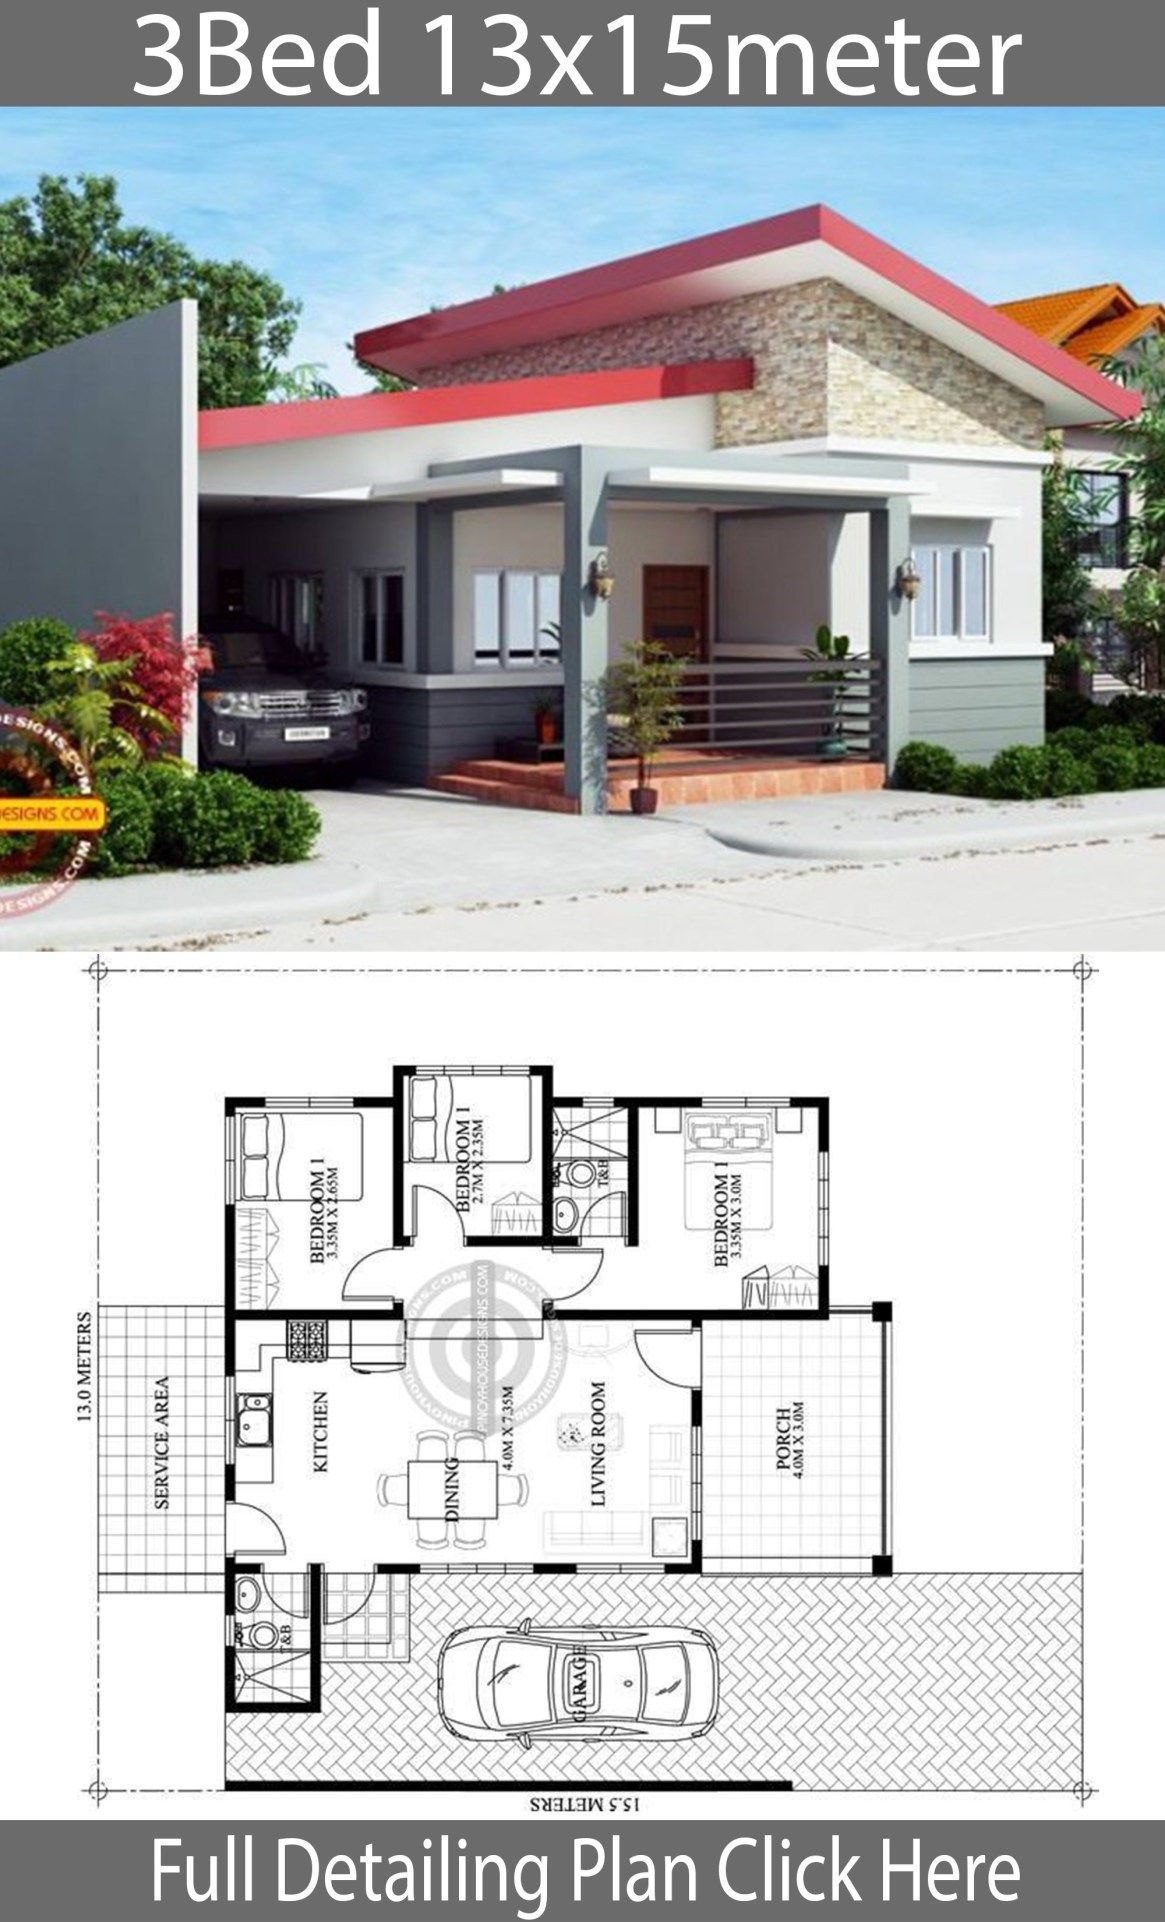 Home Design Plan 13x15m With 3 Bedrooms Home Design With Plansearch Affordable House Plans Model House Plan House Plan Gallery